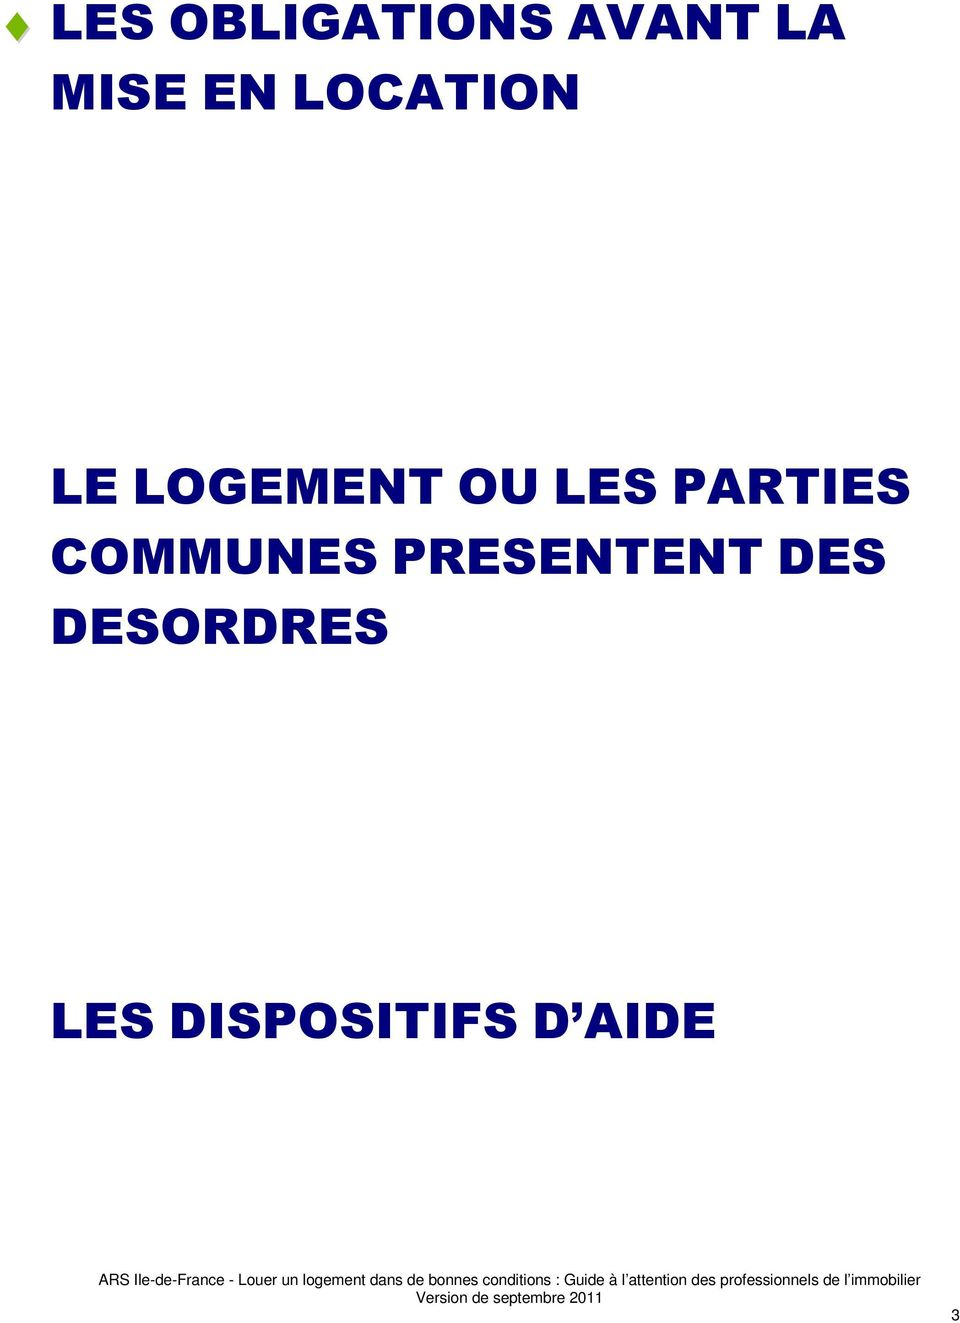 PARTIES COMMUNES PRESENTENT DES